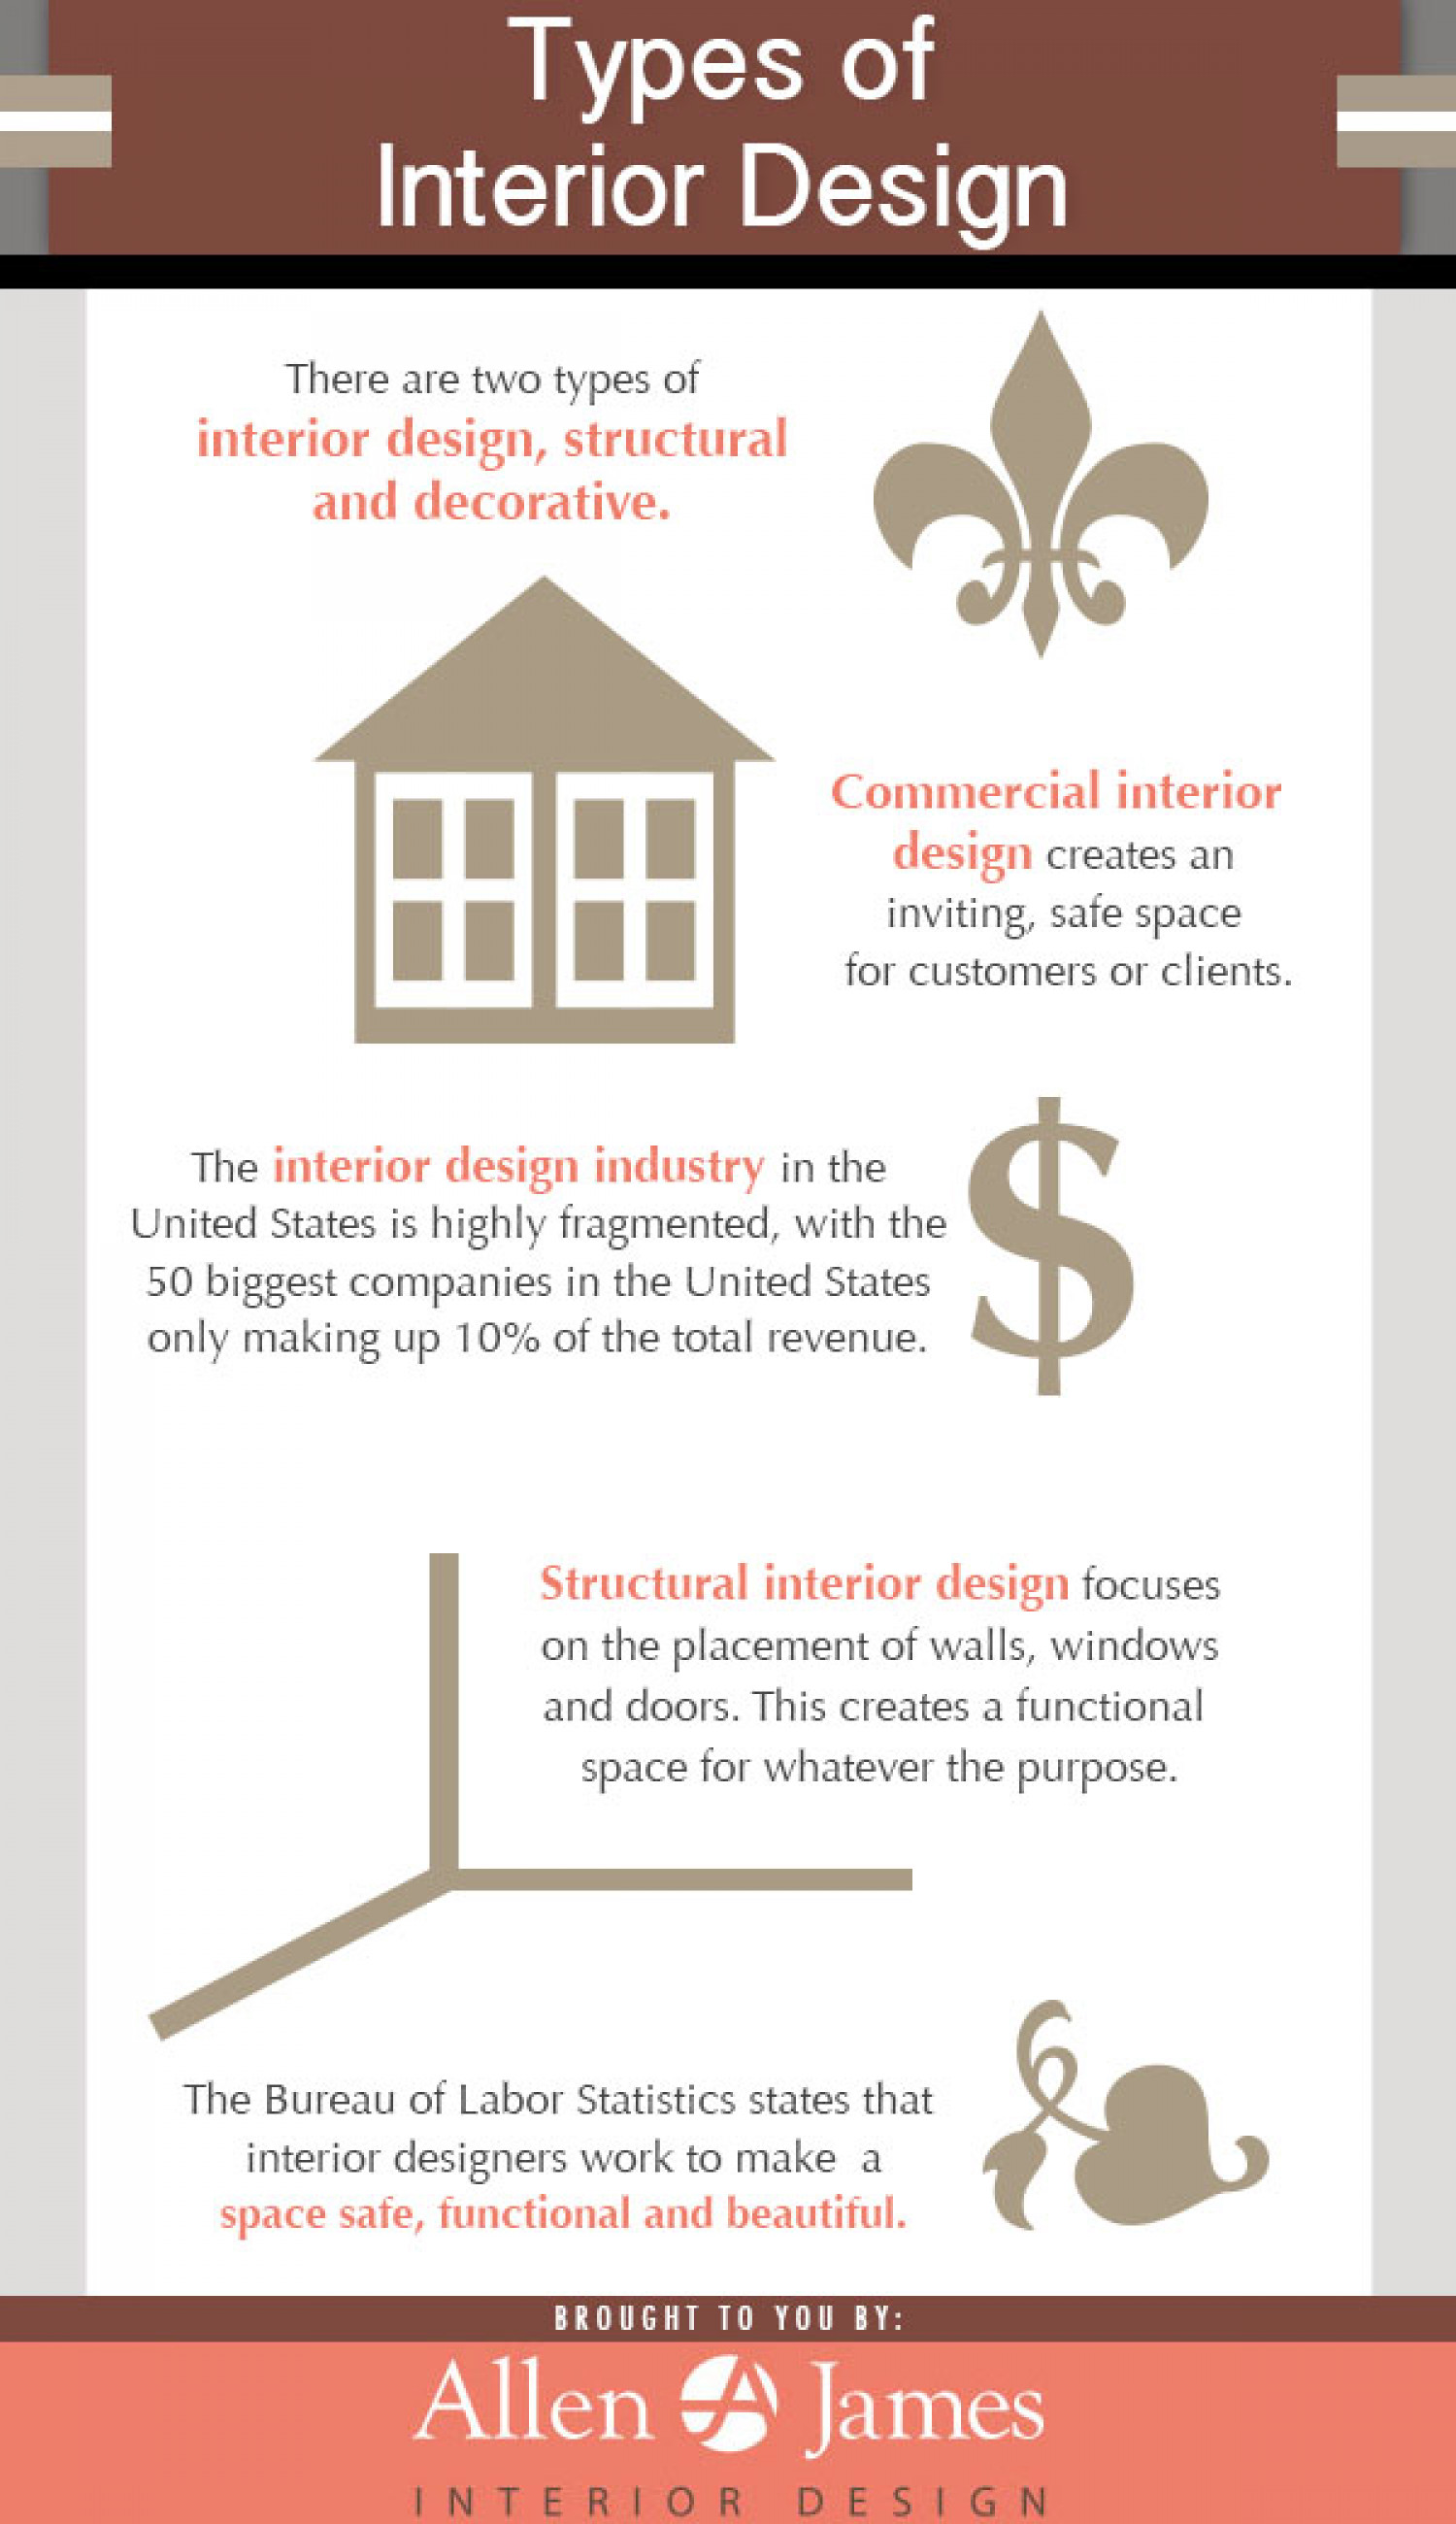 Types of Interior Design Infographic